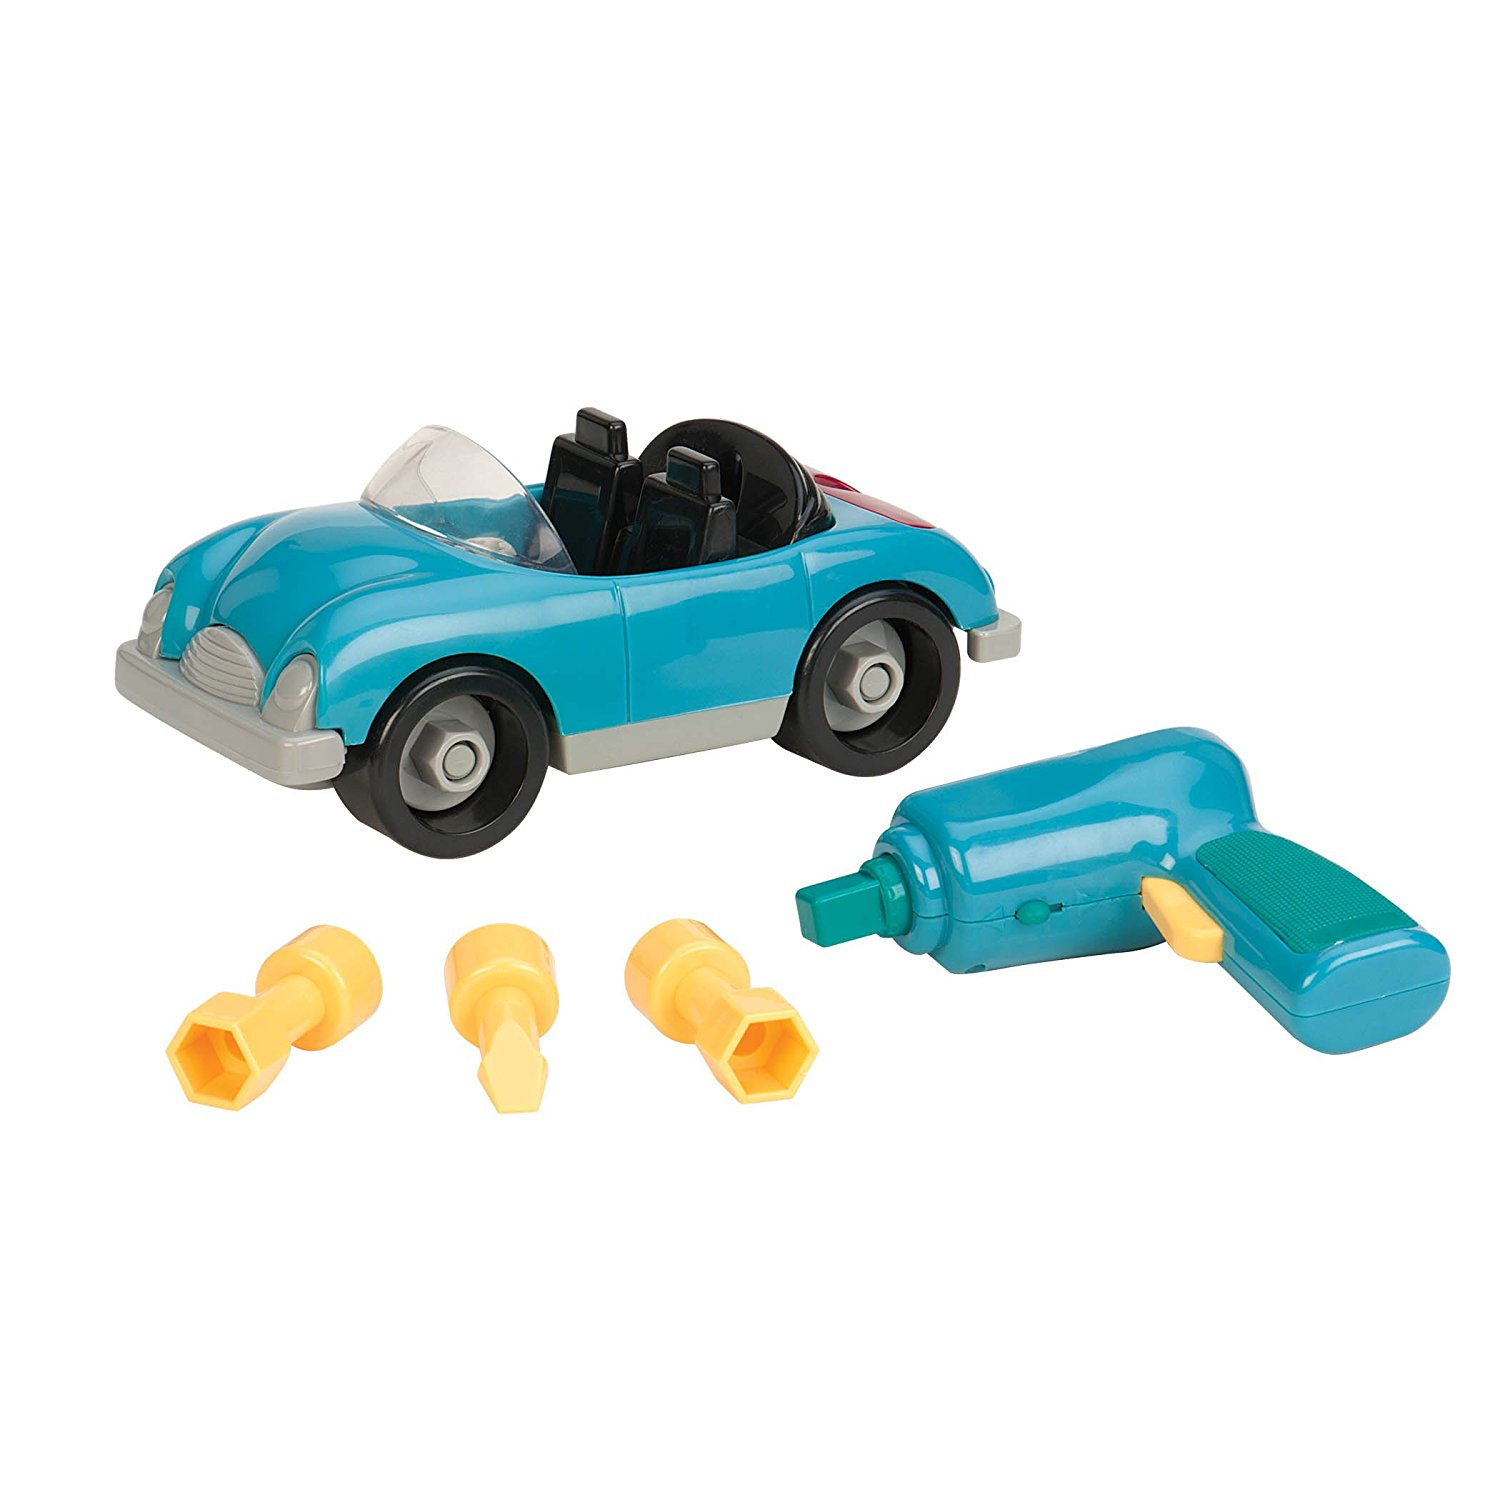 Amazon.com: Battat Take-A-Part Toy Vehicles Roadster Sky Blue: Toys ...